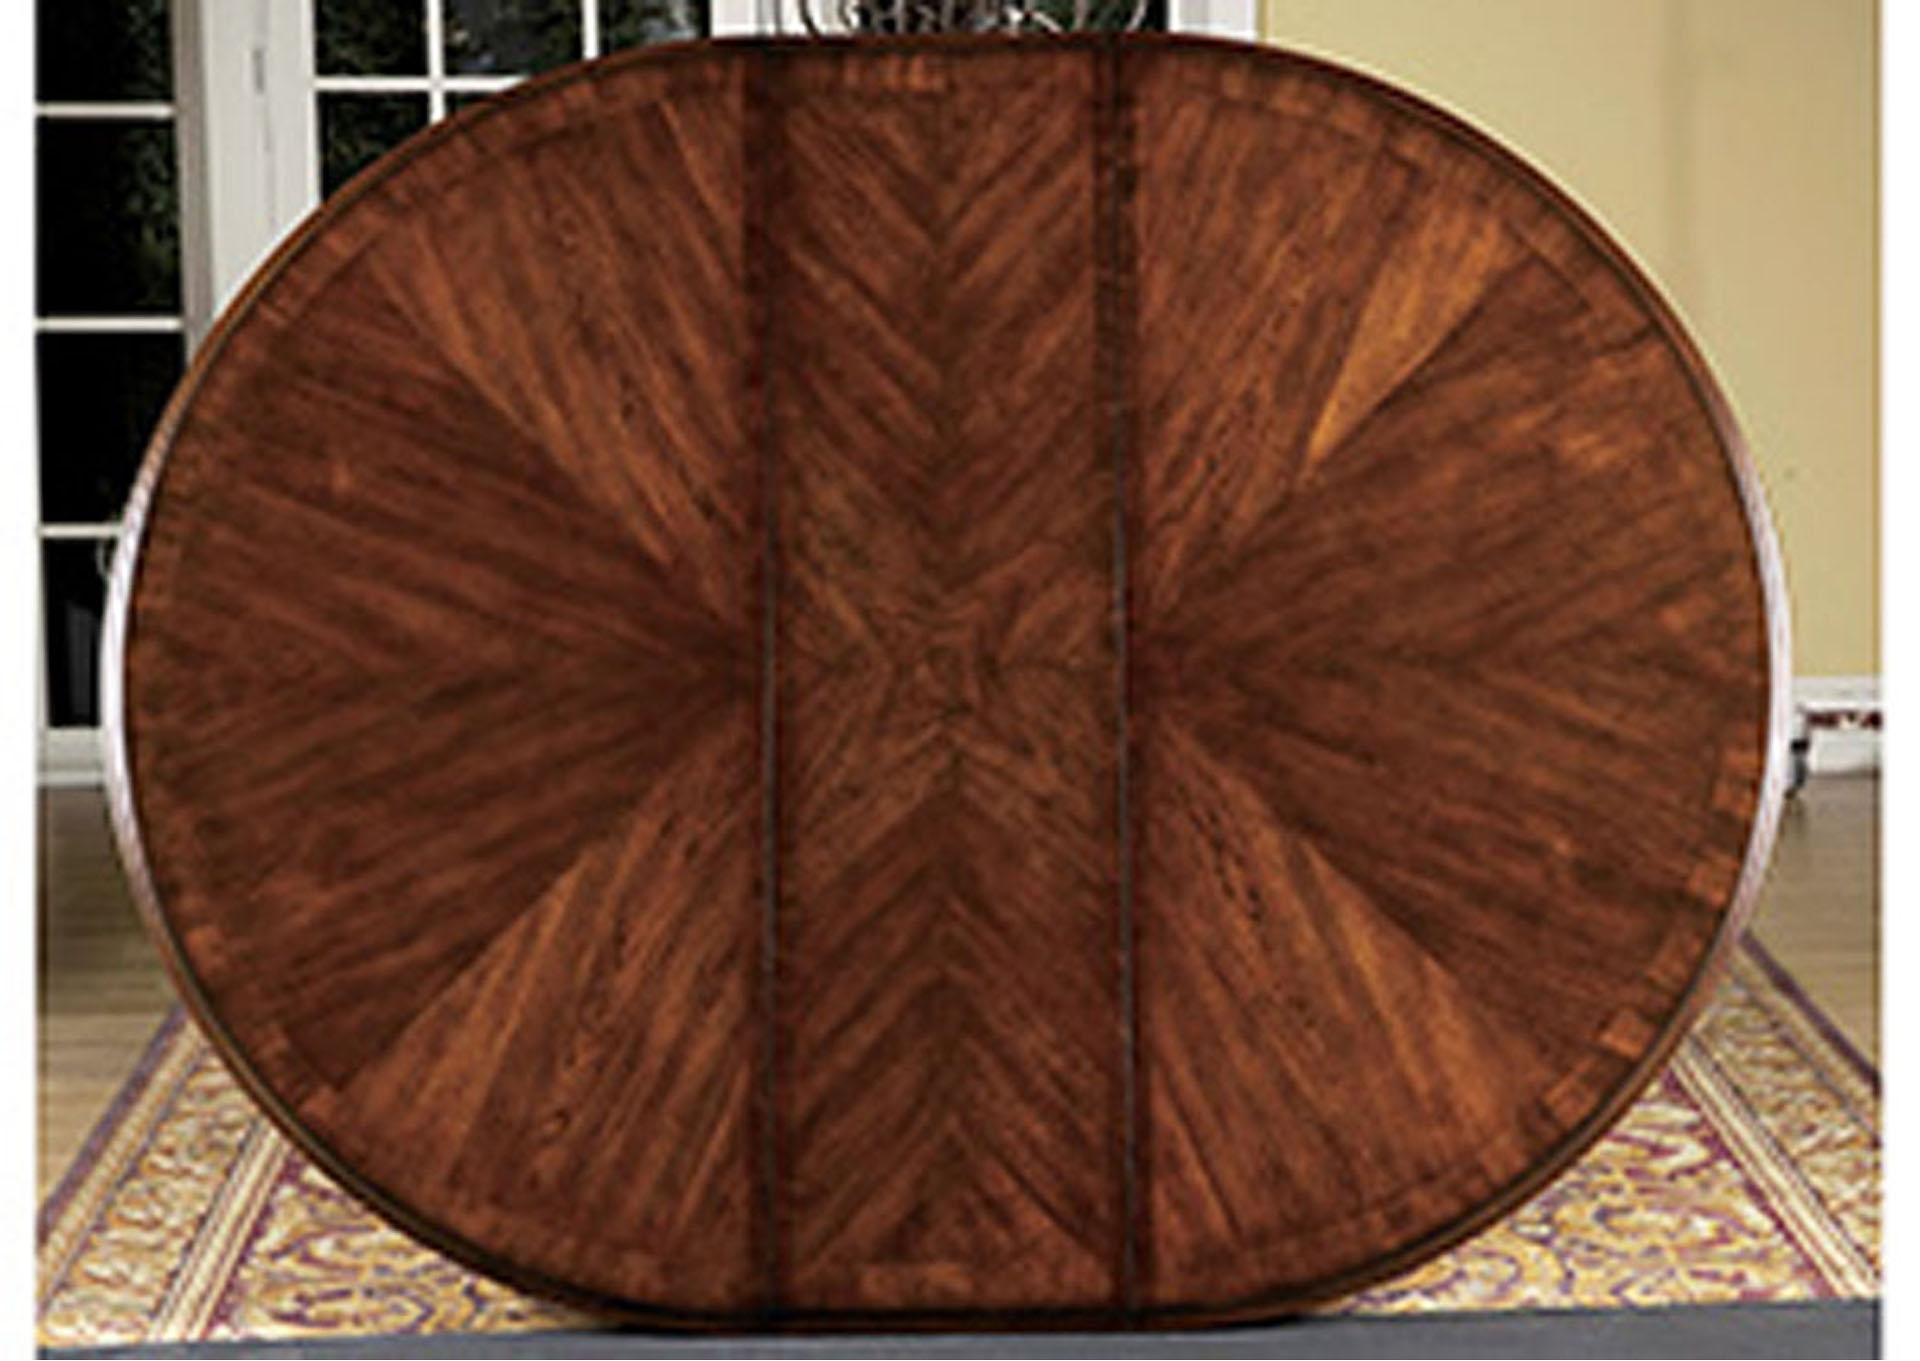 Prenzo Warm Brown Round/Oval Dining Room Table,Homelegance